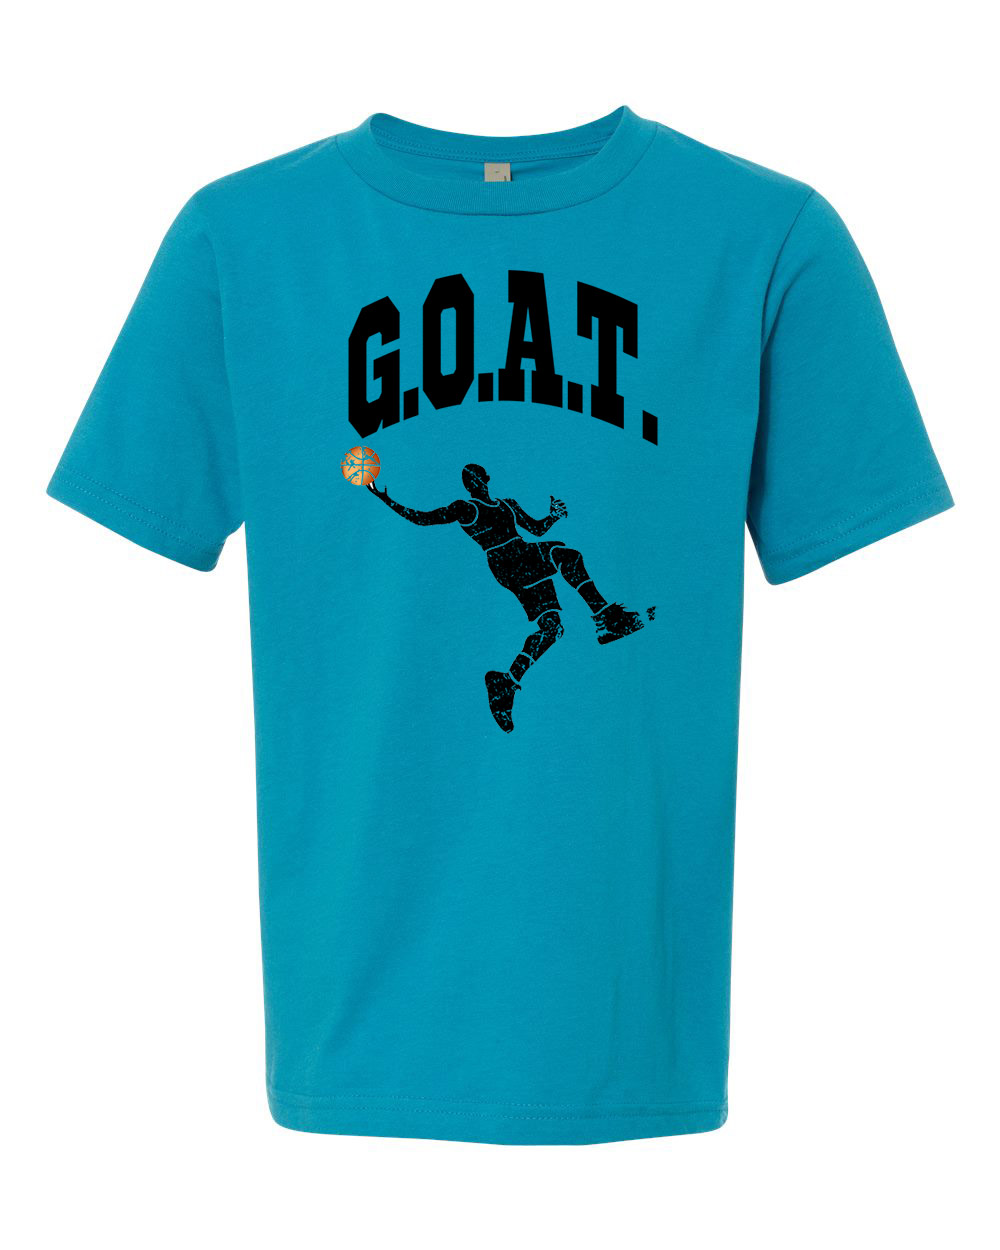 Greatest All Times G.O.A.T Basketball Youth Short Sleeve T-Shirt